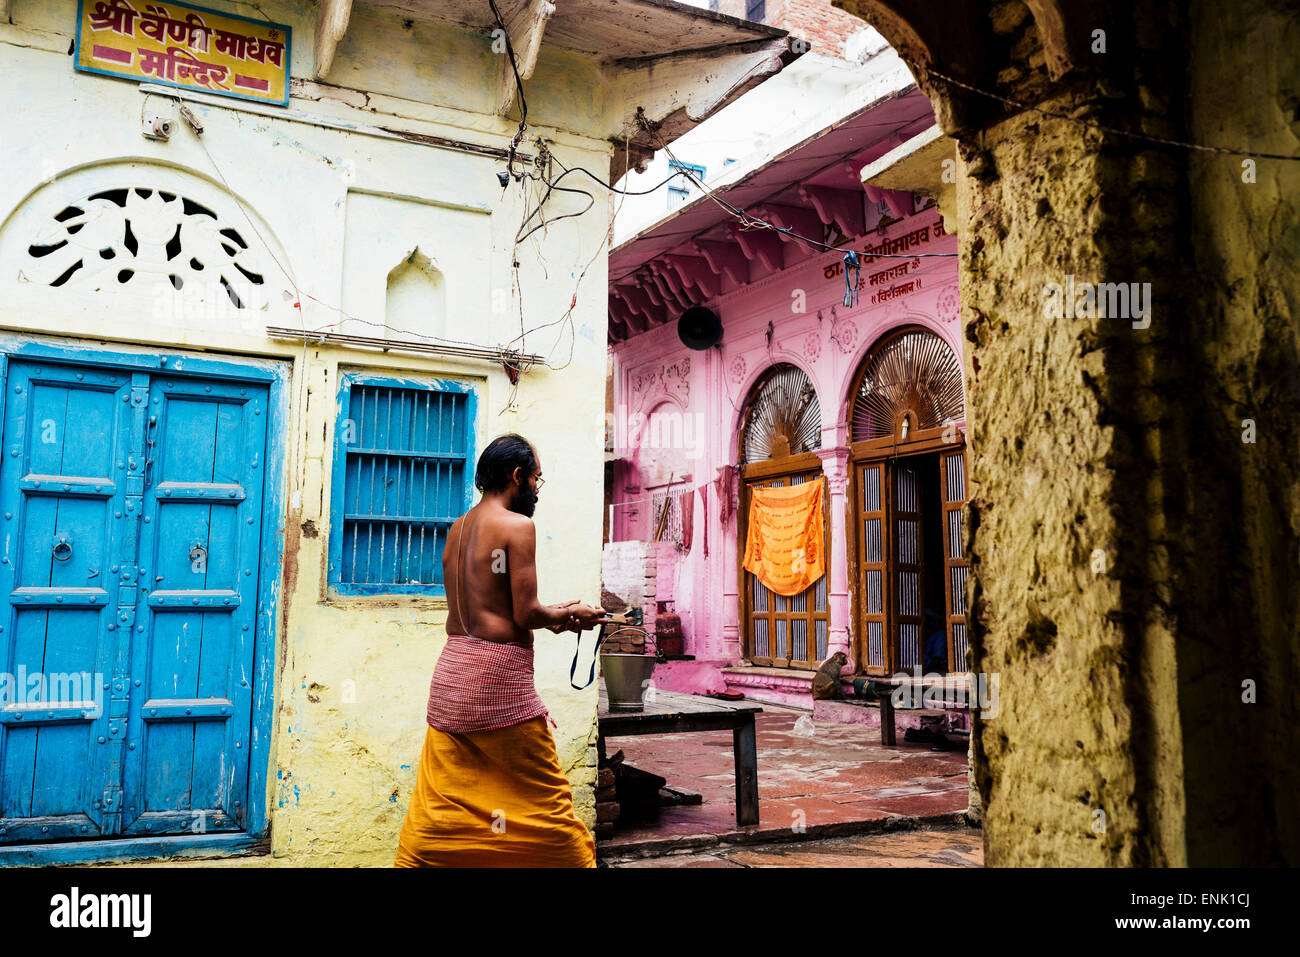 Mathura, Uttar Pradesh, India, Asia - Stock Image